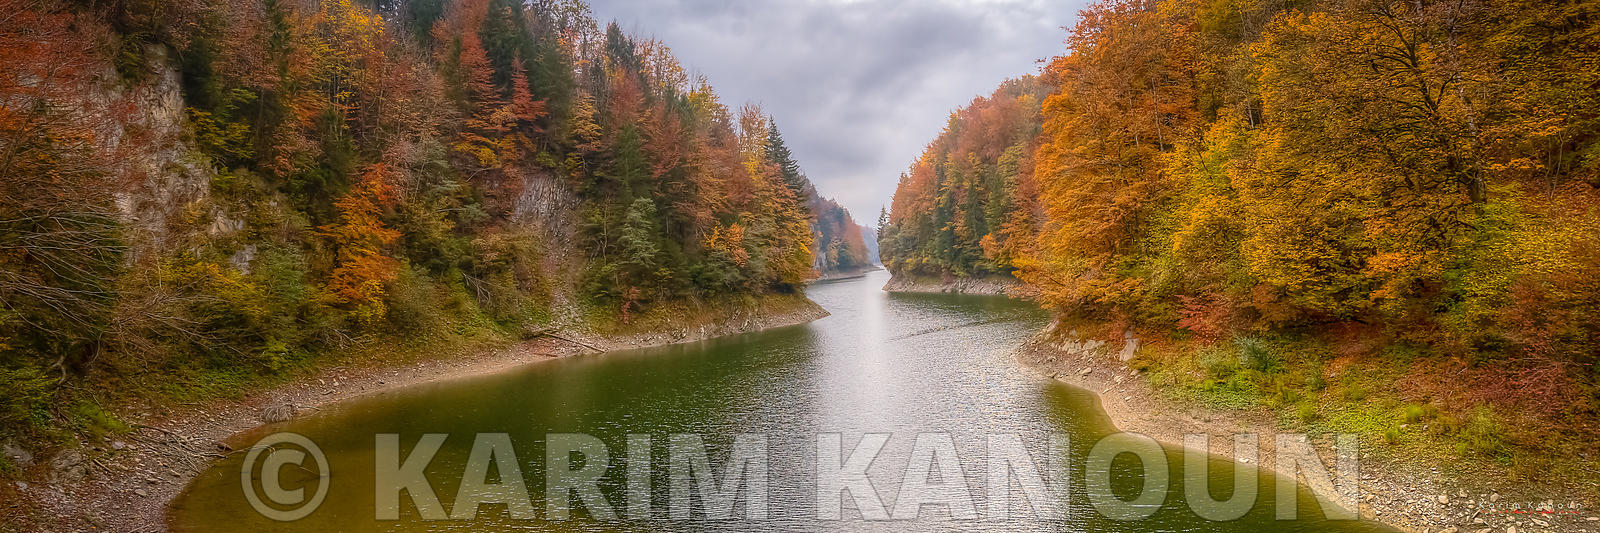 Panorama - River & forest with autumn colors - Gruyère